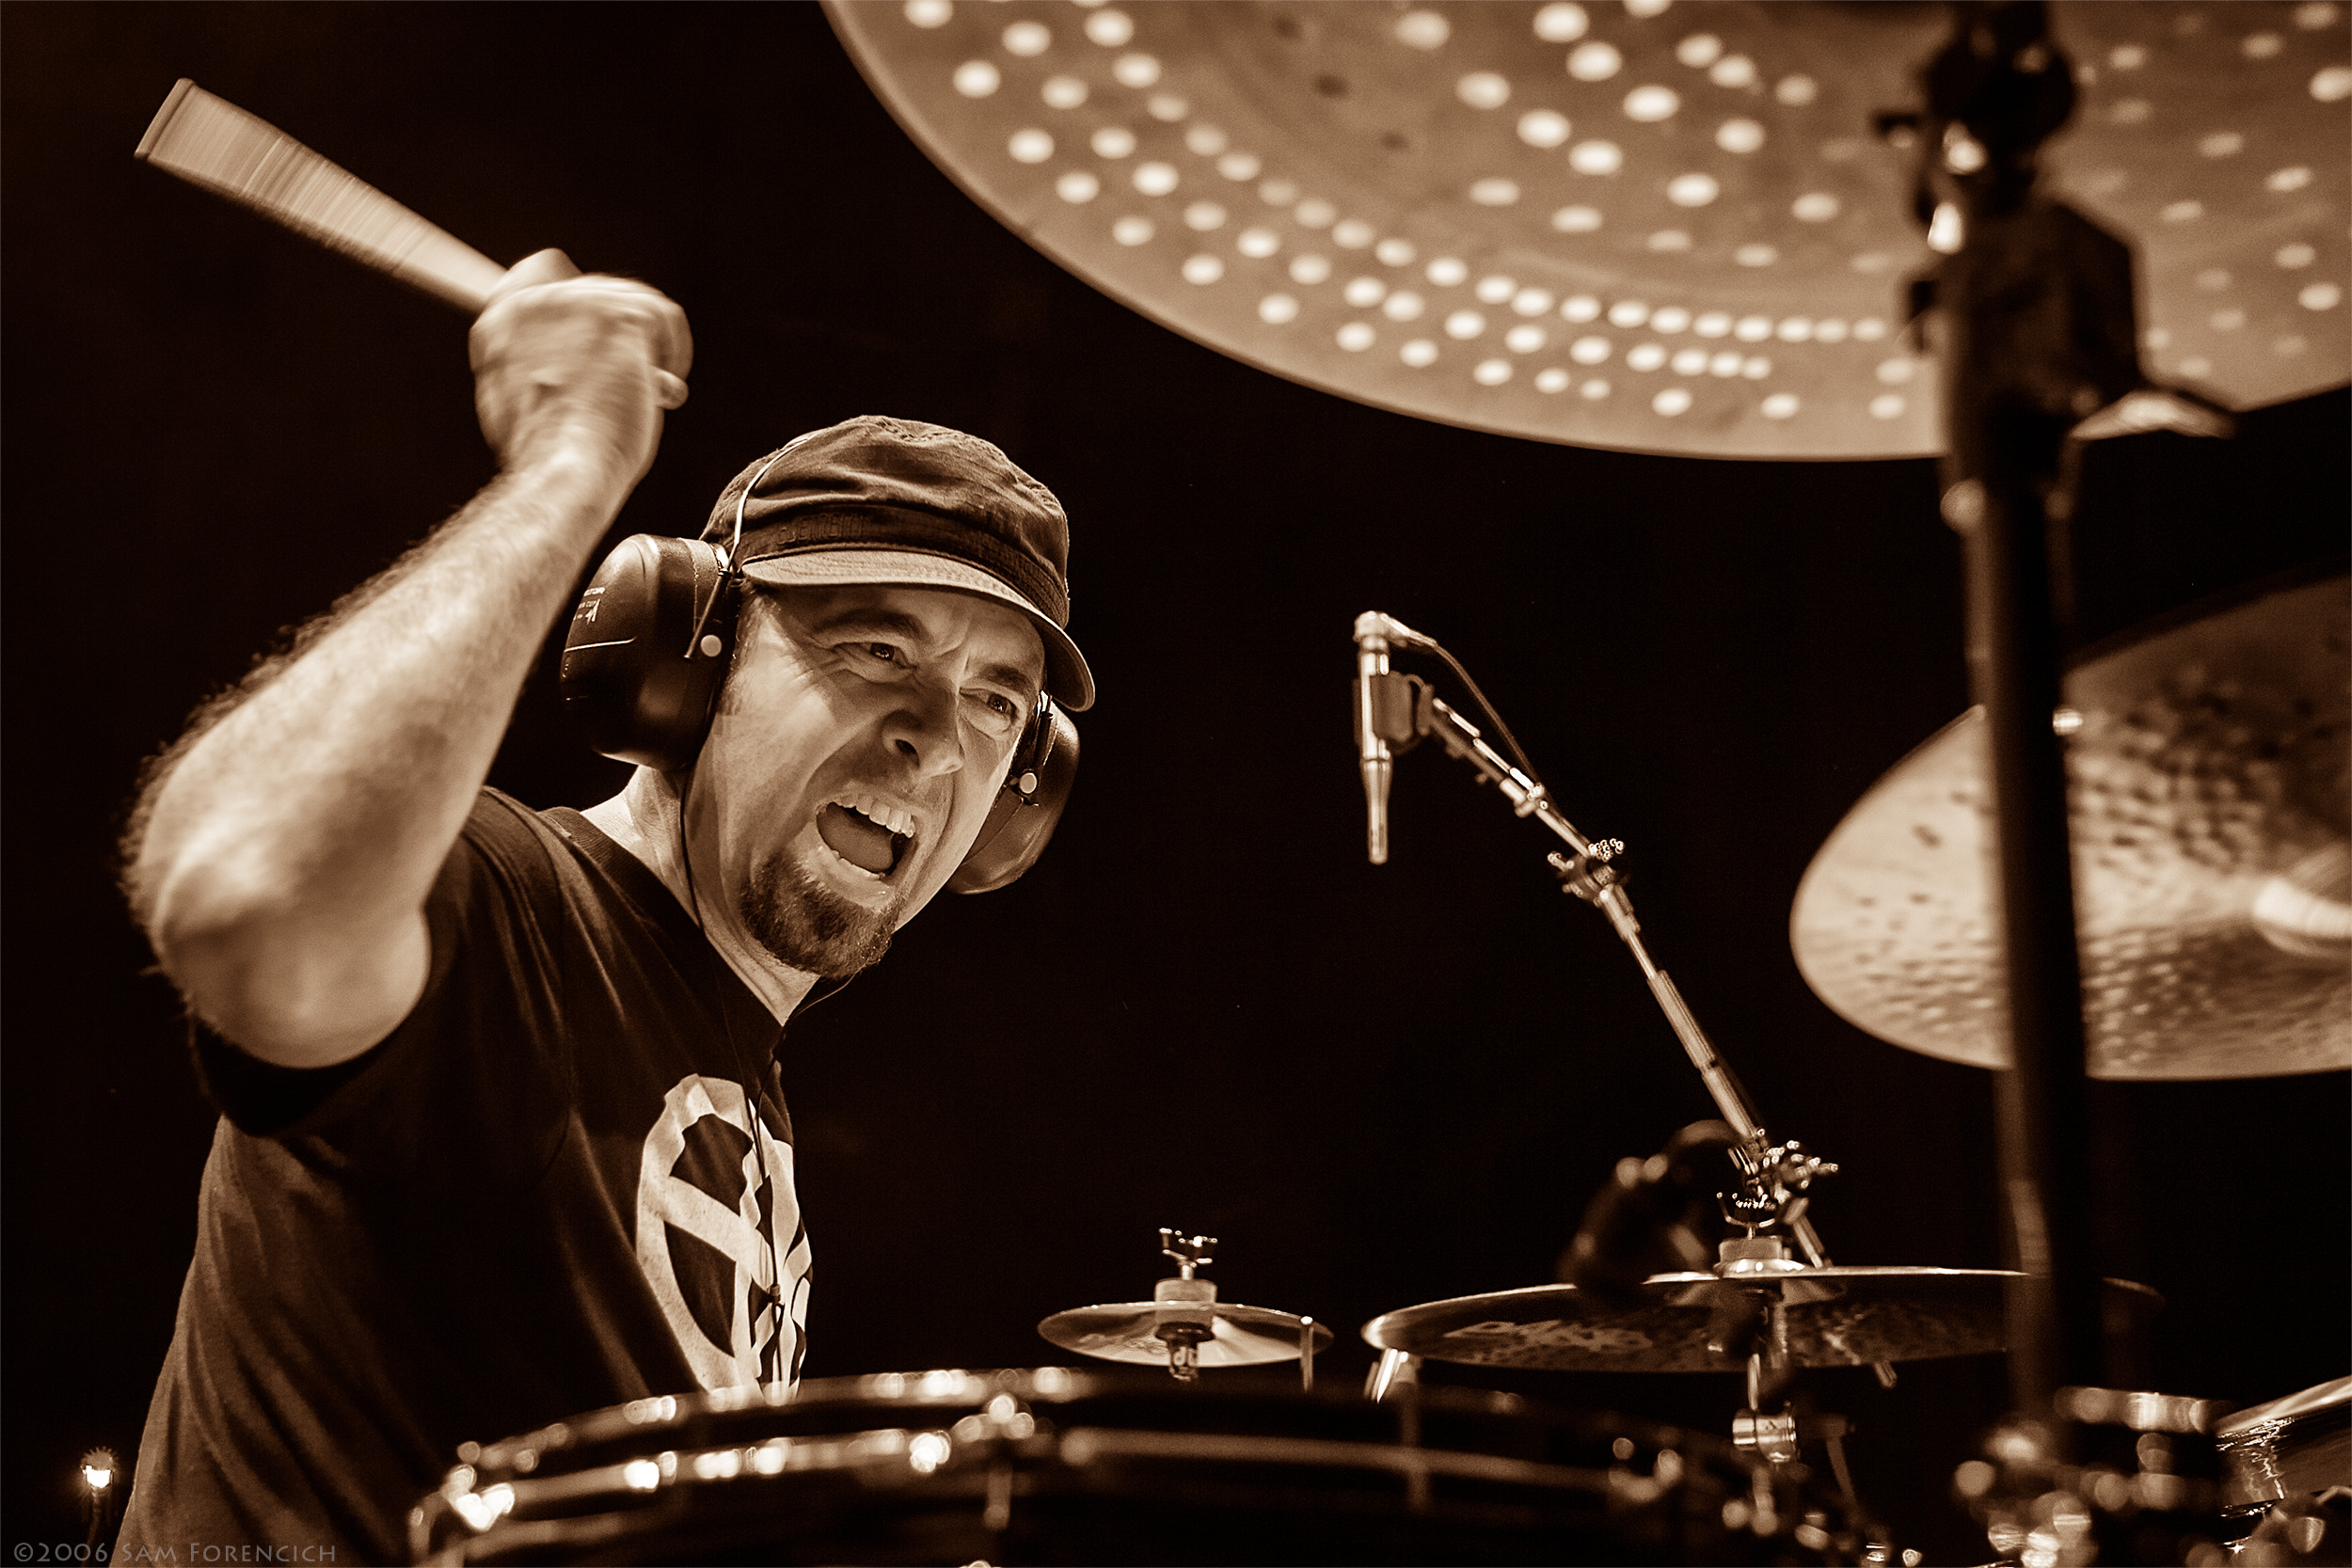 May 2006,Portland, Oregon - Joe Satriani drummer Jeff Campitelli performs at the Roseland Theater - 2006 Super Colossal Tour ©2006 Sam Forencich